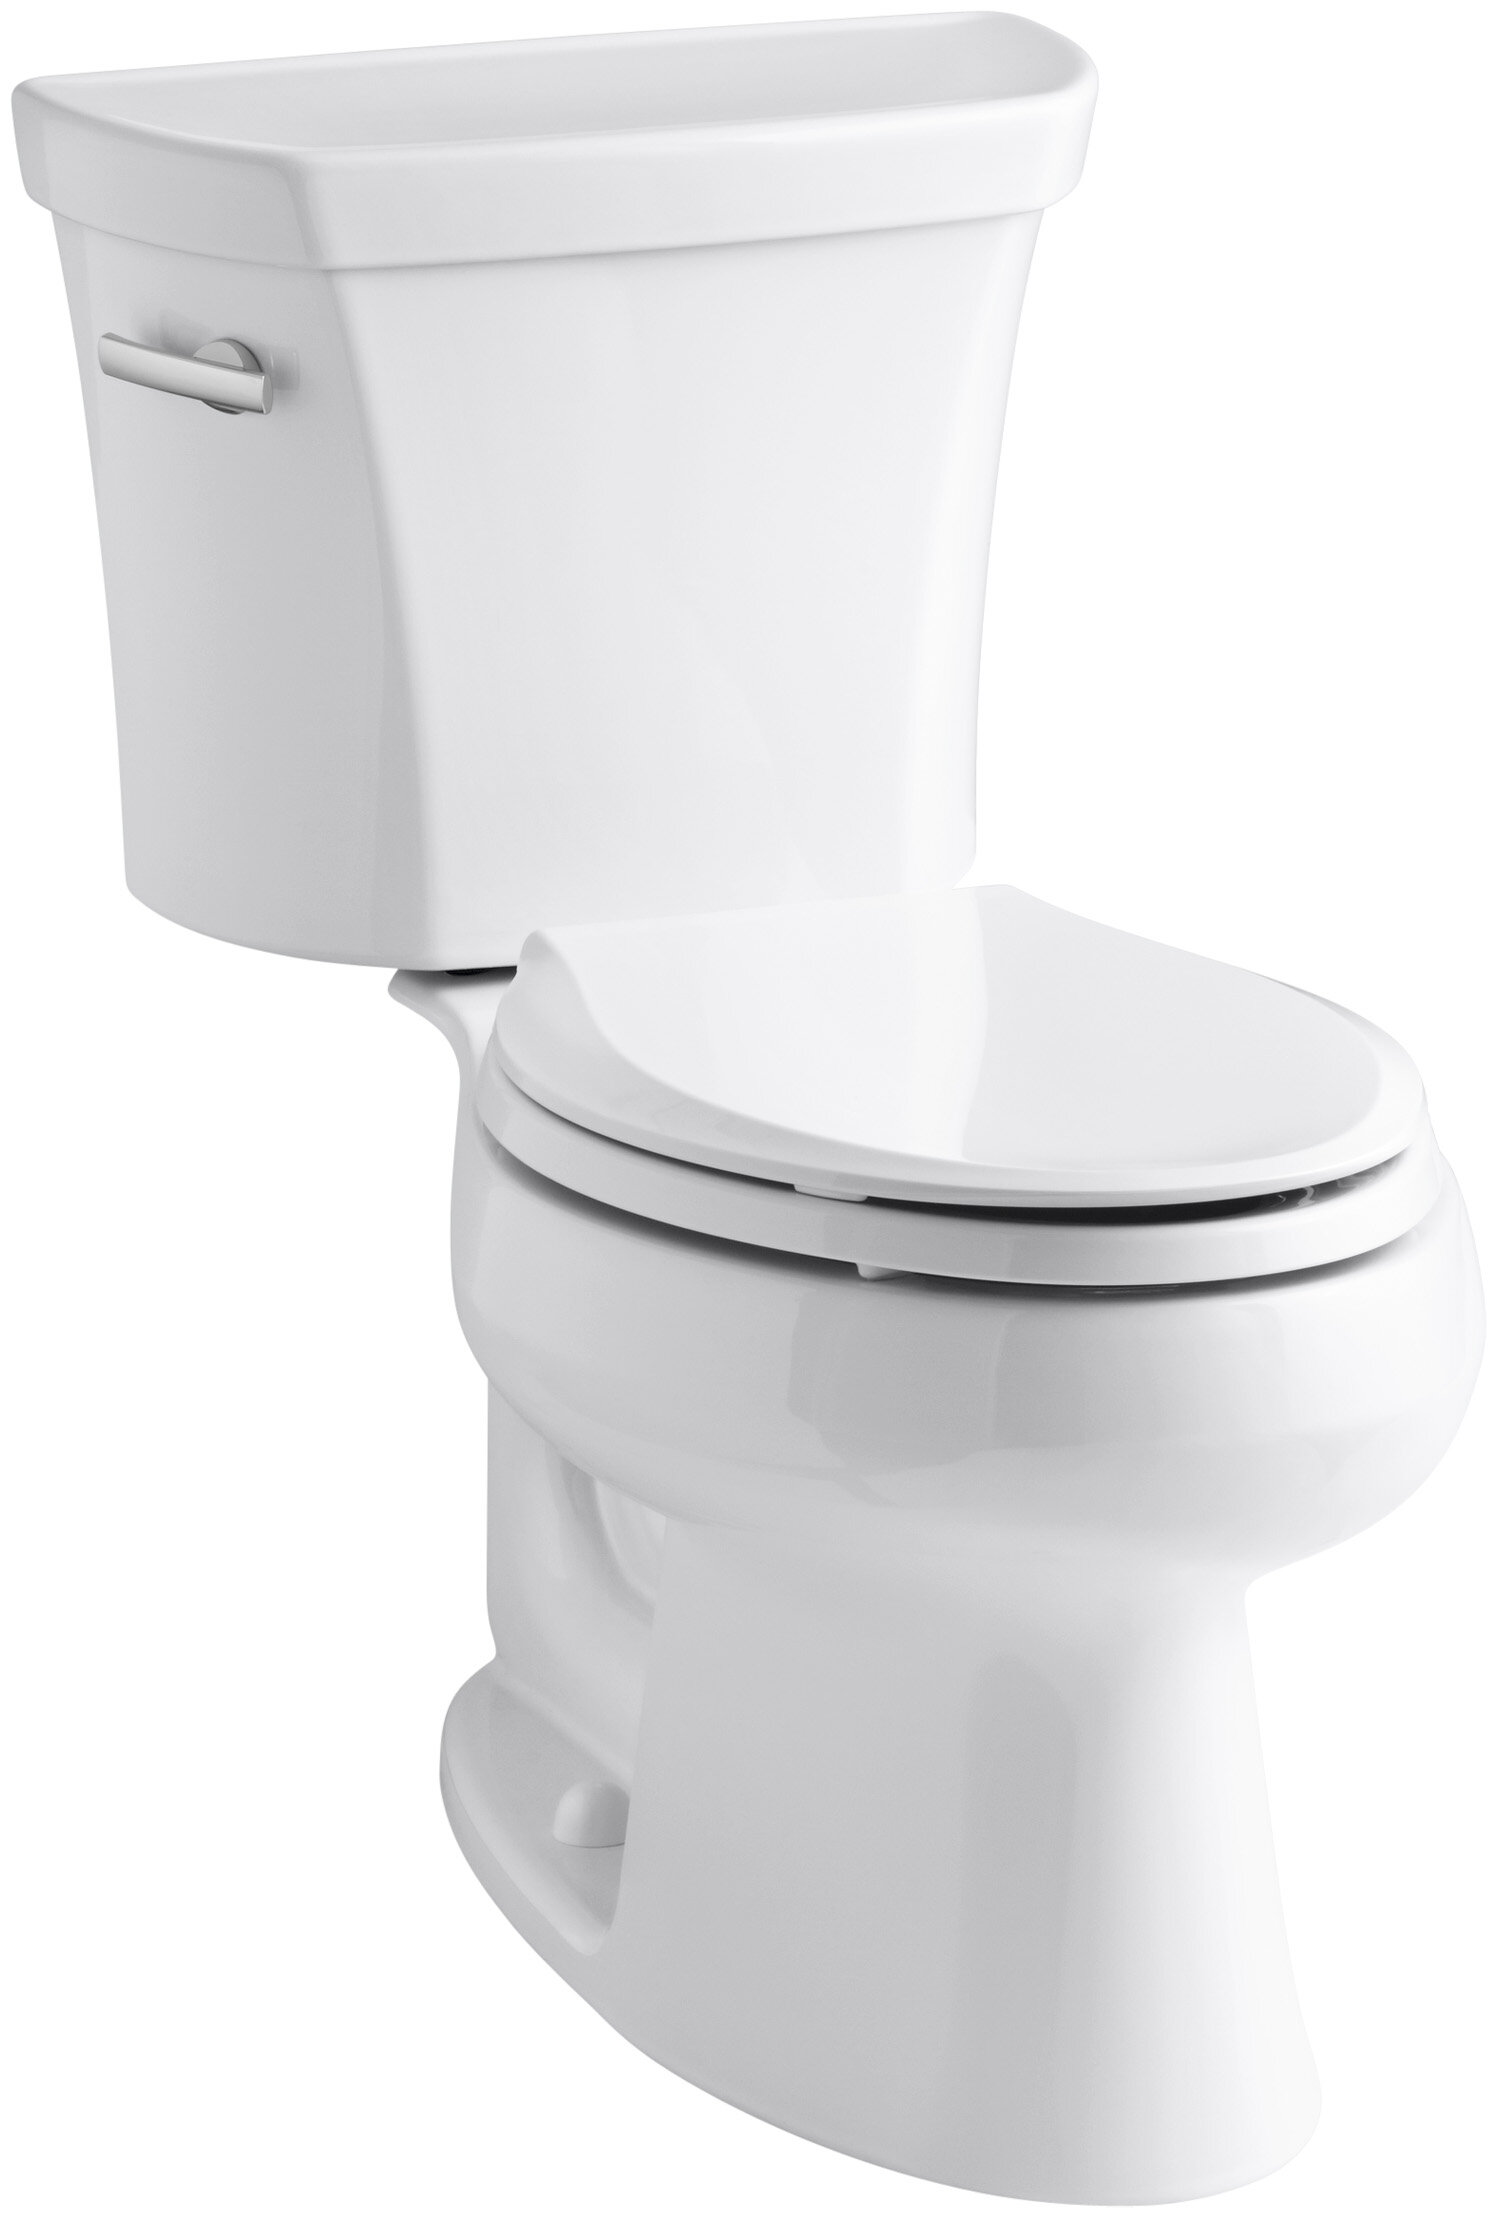 Phenomenal Wellworth Two Piece Elongated 1 6 Gpf Toilet With Class Five Flush Technology And Left Hand Trip Lever Inzonedesignstudio Interior Chair Design Inzonedesignstudiocom